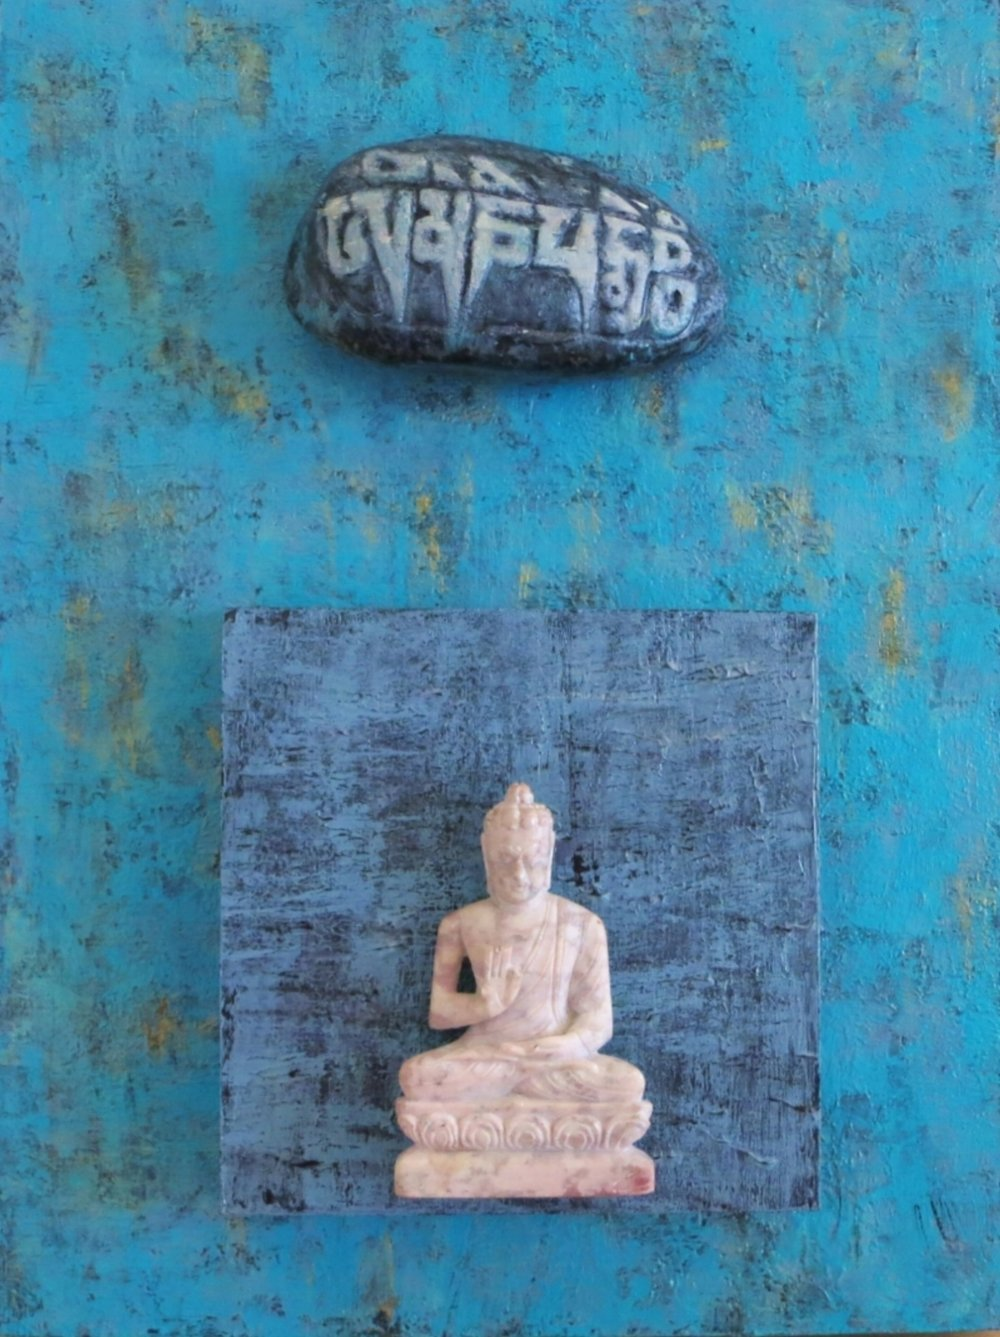 """ Even Buddha Gets The Blues with Om Mani Padme Hum   9"" x 12"" cradled wood panel  © Marilyn Grad 2018"